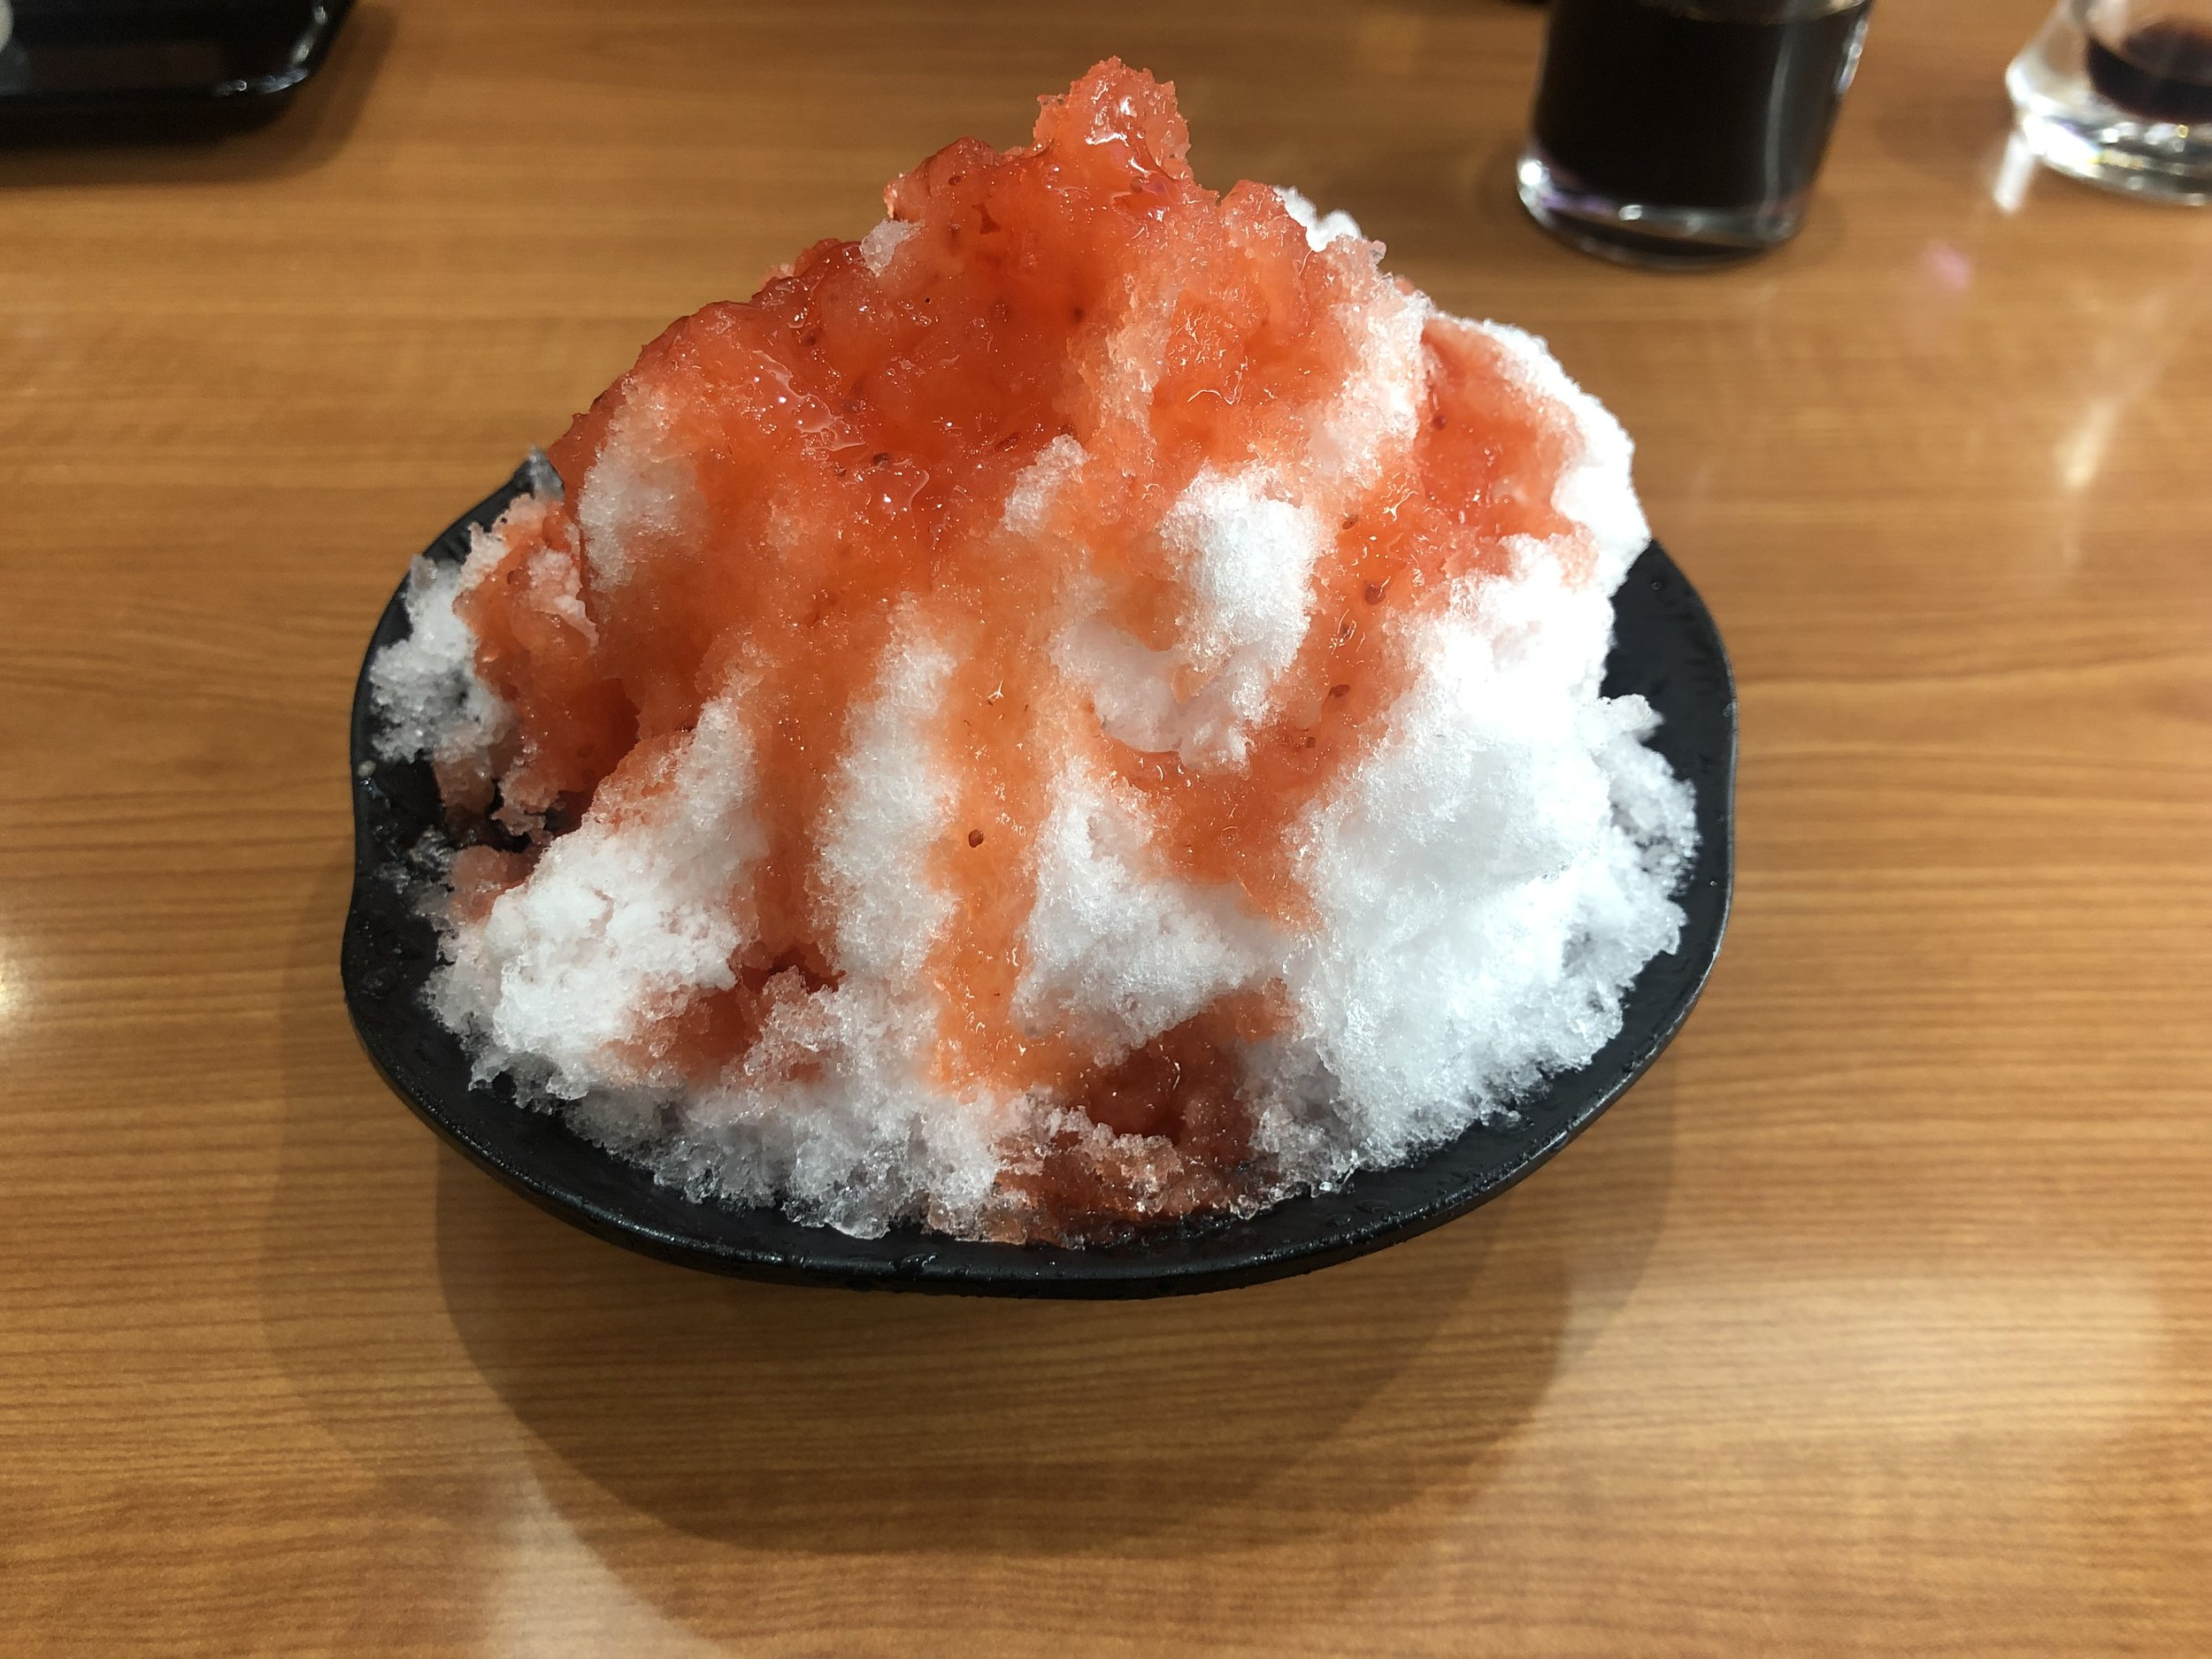 Andy recommended I try this and DAMN I'm glad I did. It shaved ice, but the softest, smoothest, lightest, sweetest ice I've ever tasted. Fresh strawberry…stuff.. on top made it one of my favorite desserts.